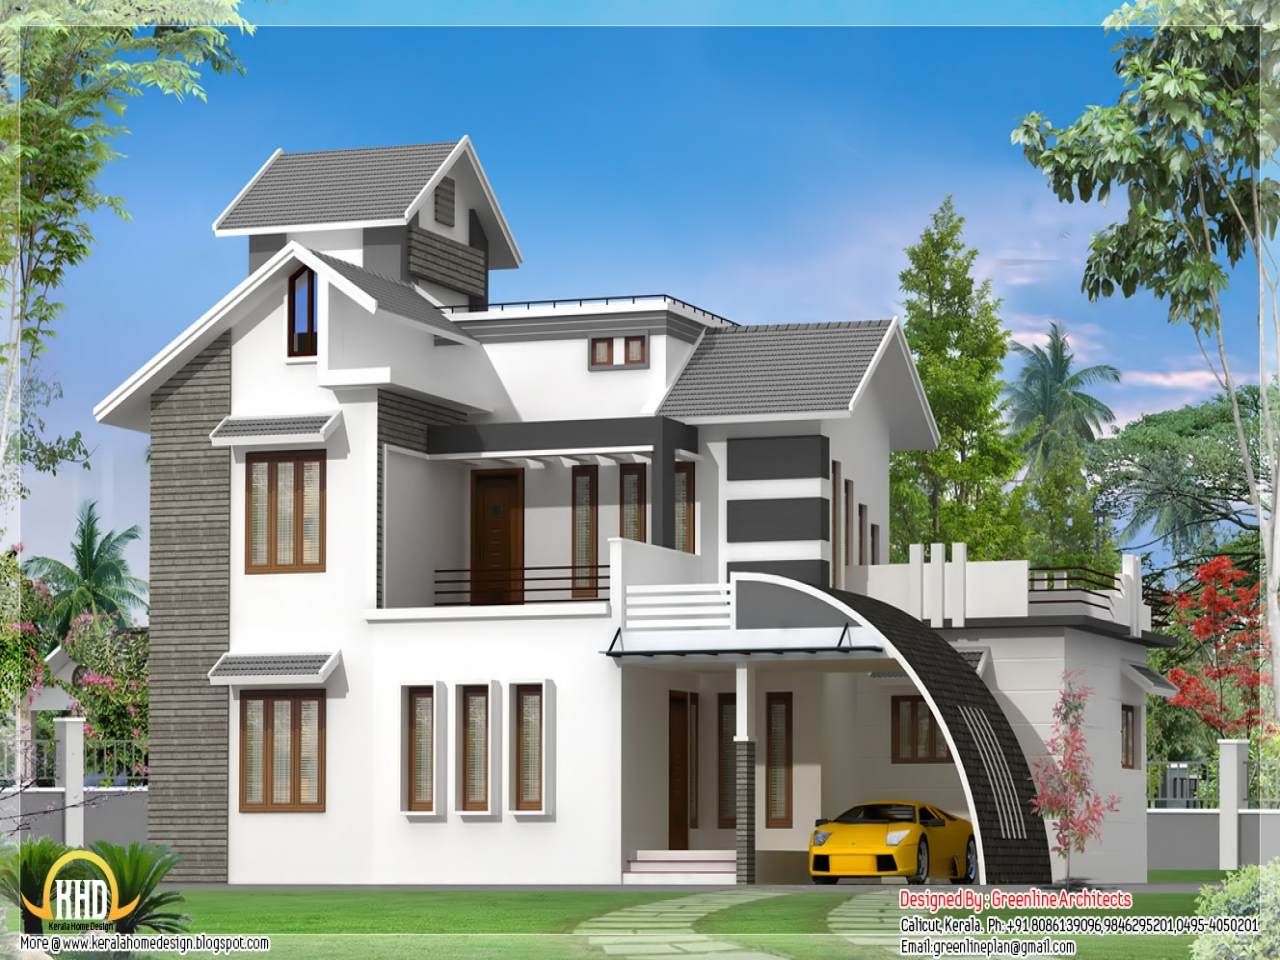 Indian Bungalow House Modern Minimalist Home Design